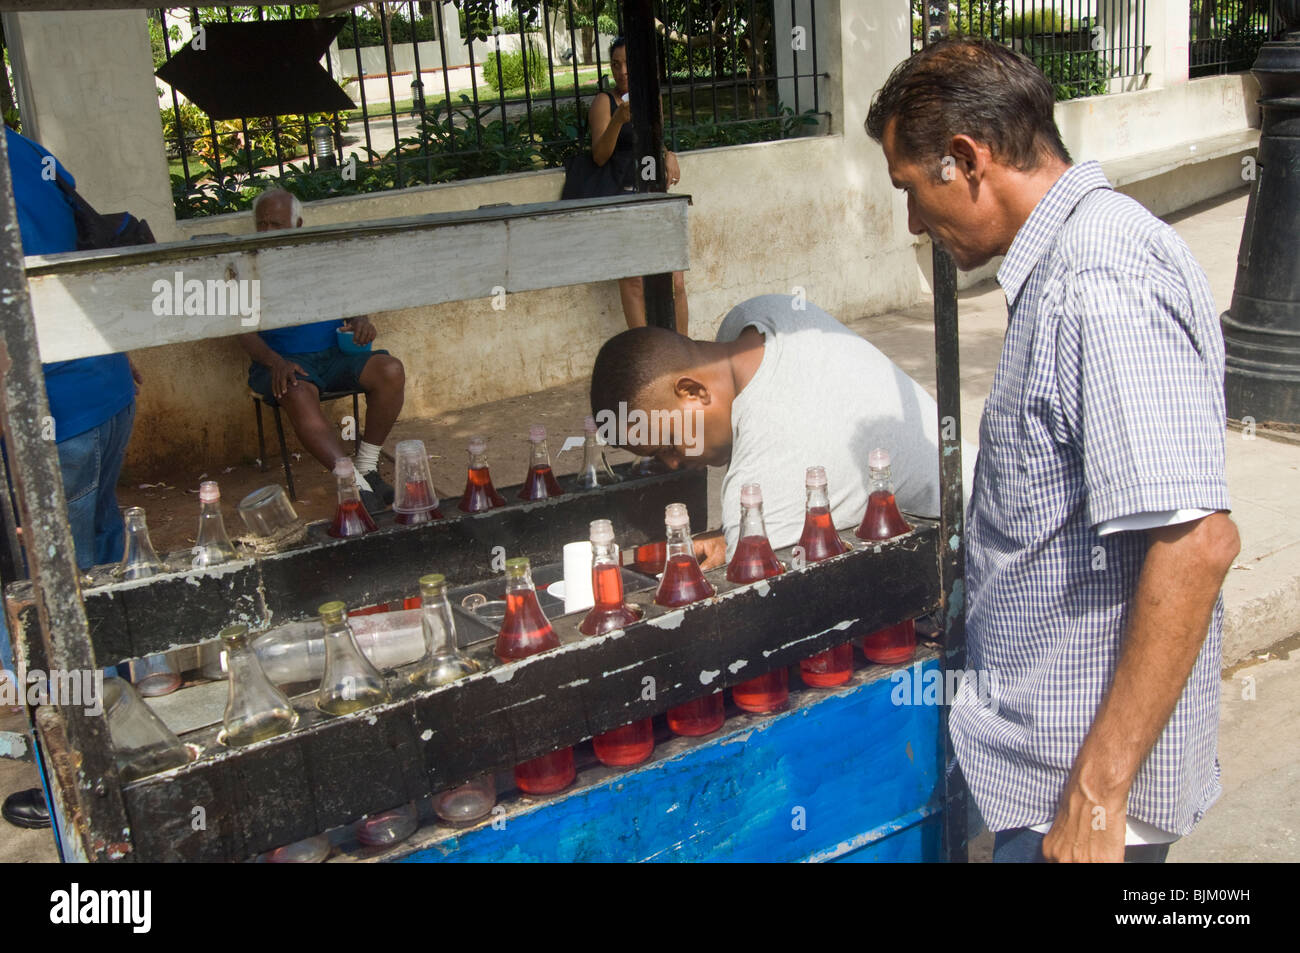 A Cuban buying a sugary refreshing drink off a street vendor in Havana this drink is not recommended for tourists - Stock Image